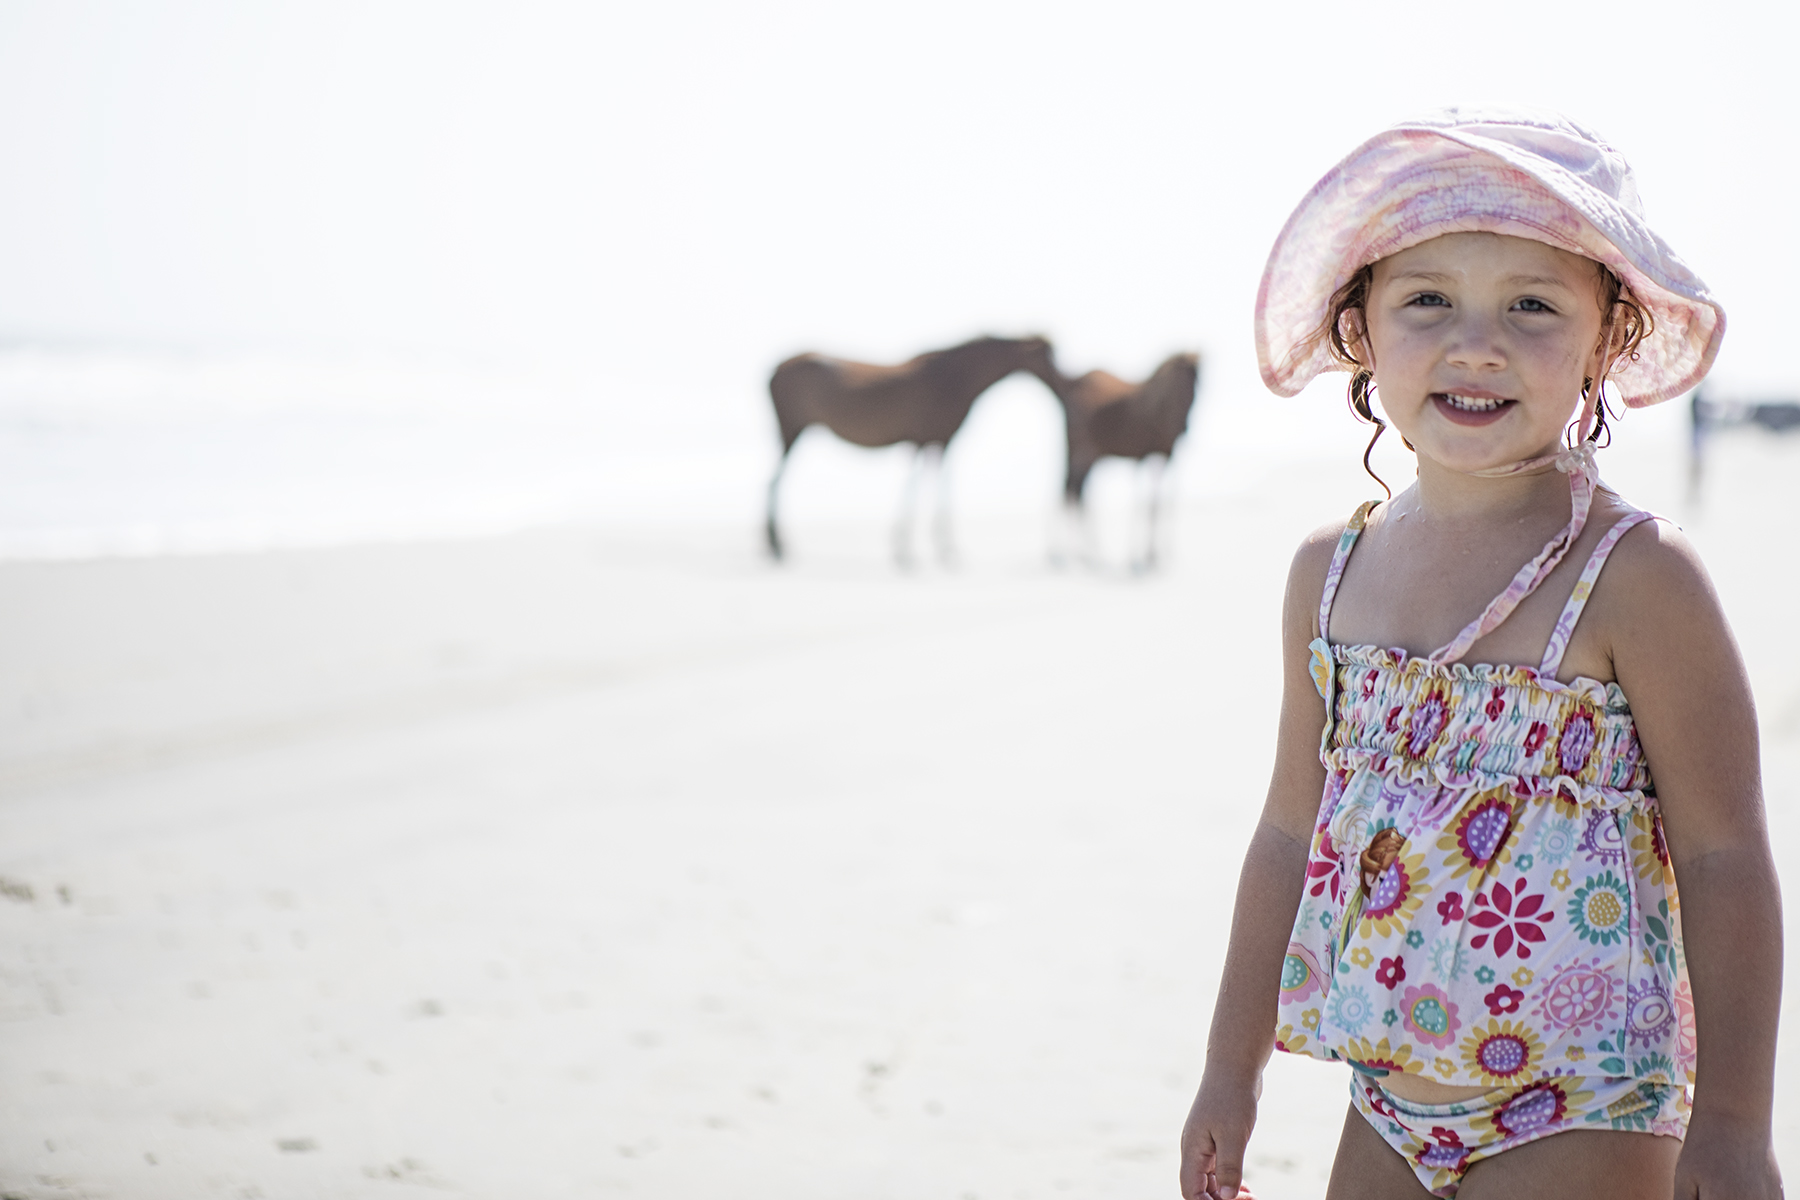 Brenna and the ponies.